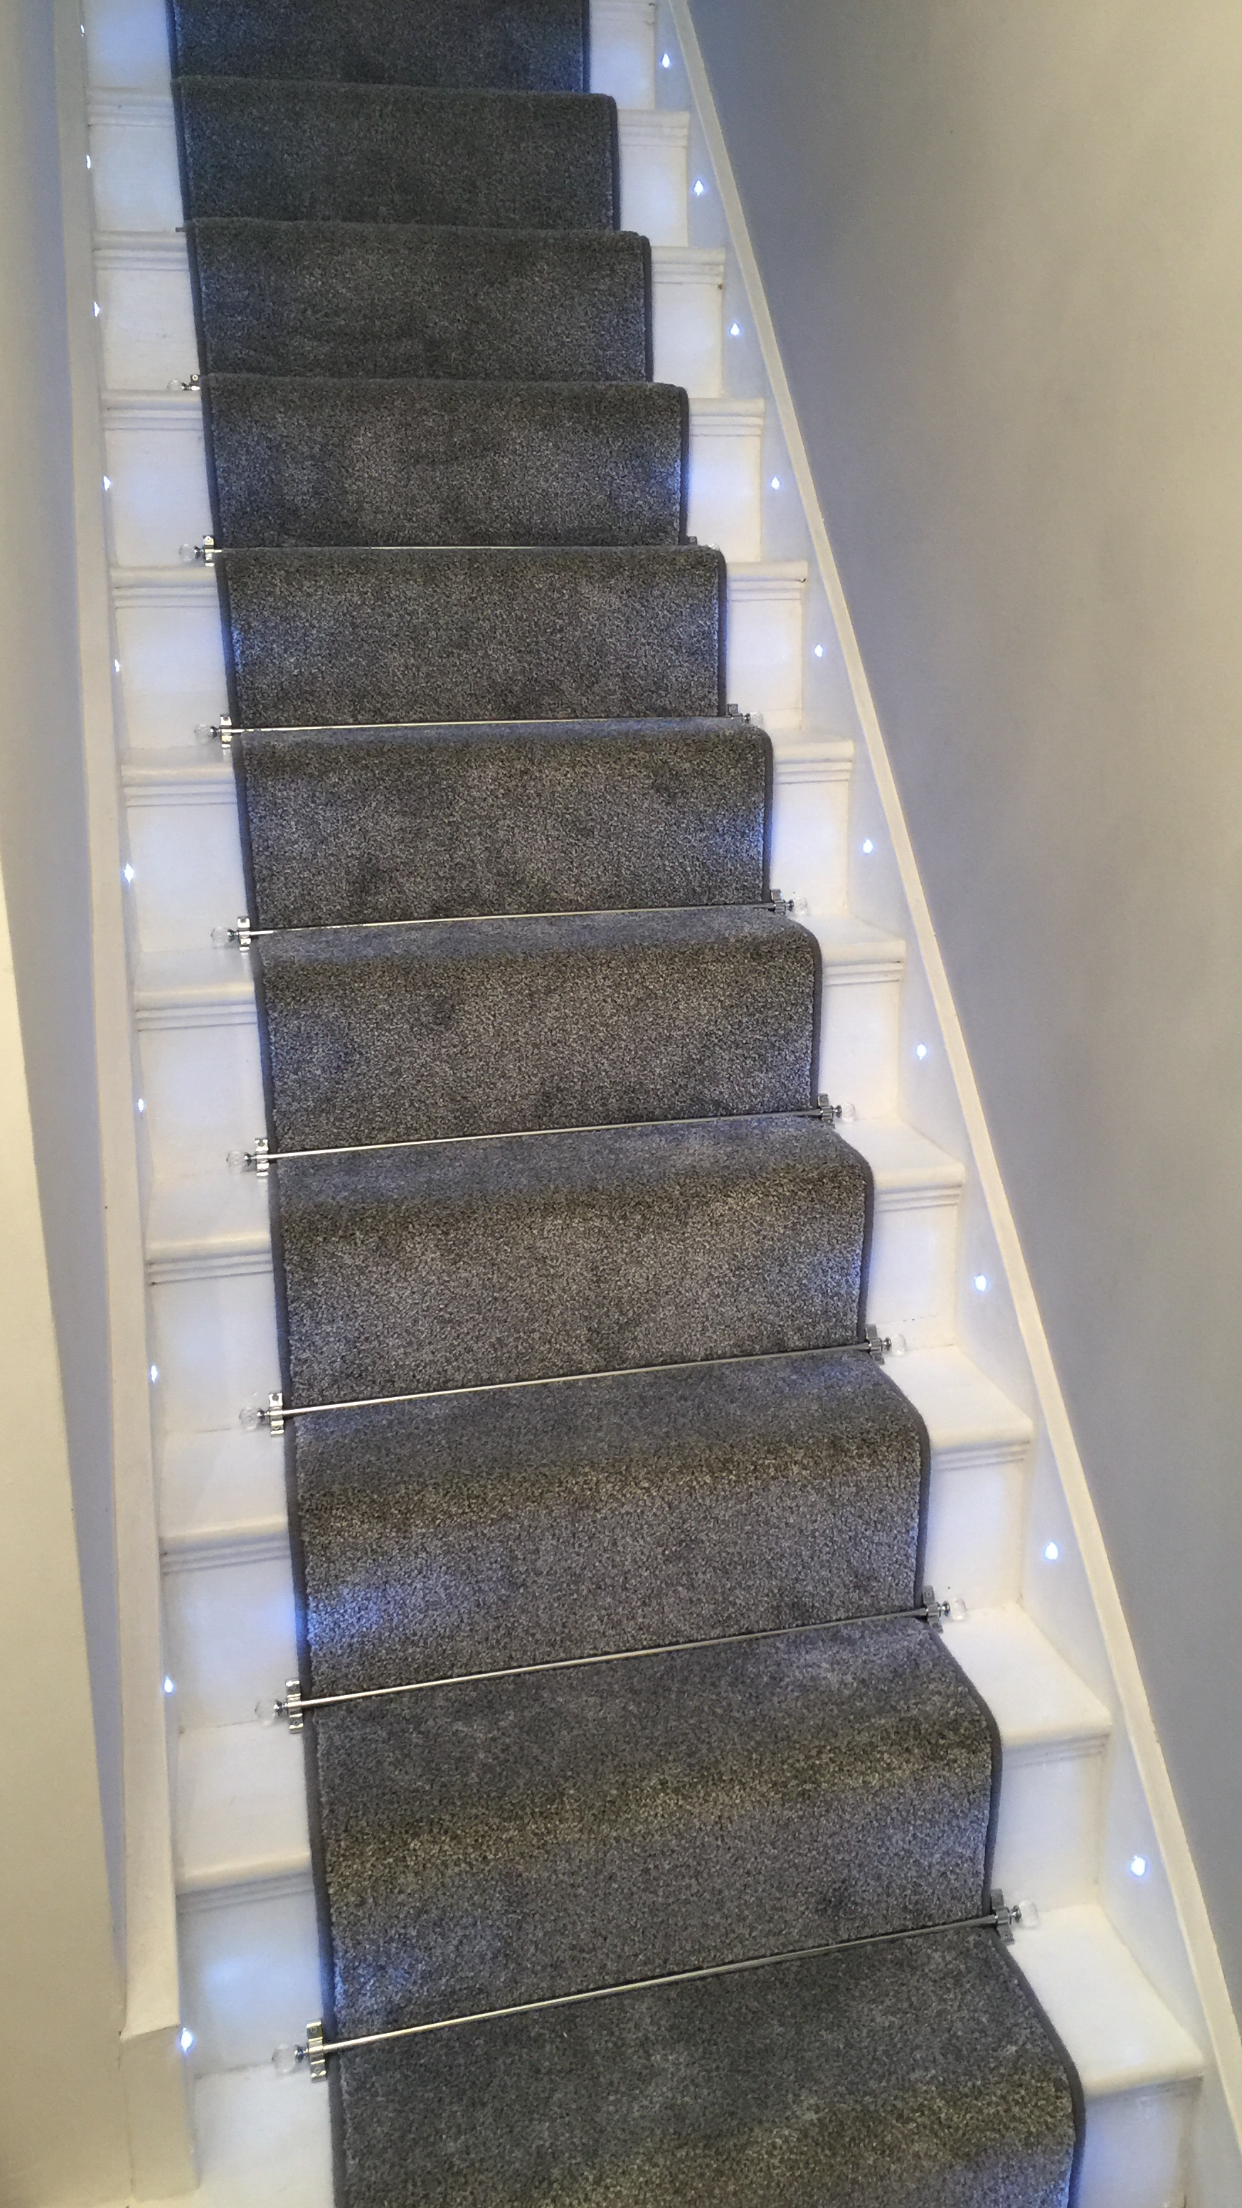 Lighting Basement Washroom Stairs: Grey Carpet Runner, Stair Rods, Stair Lights